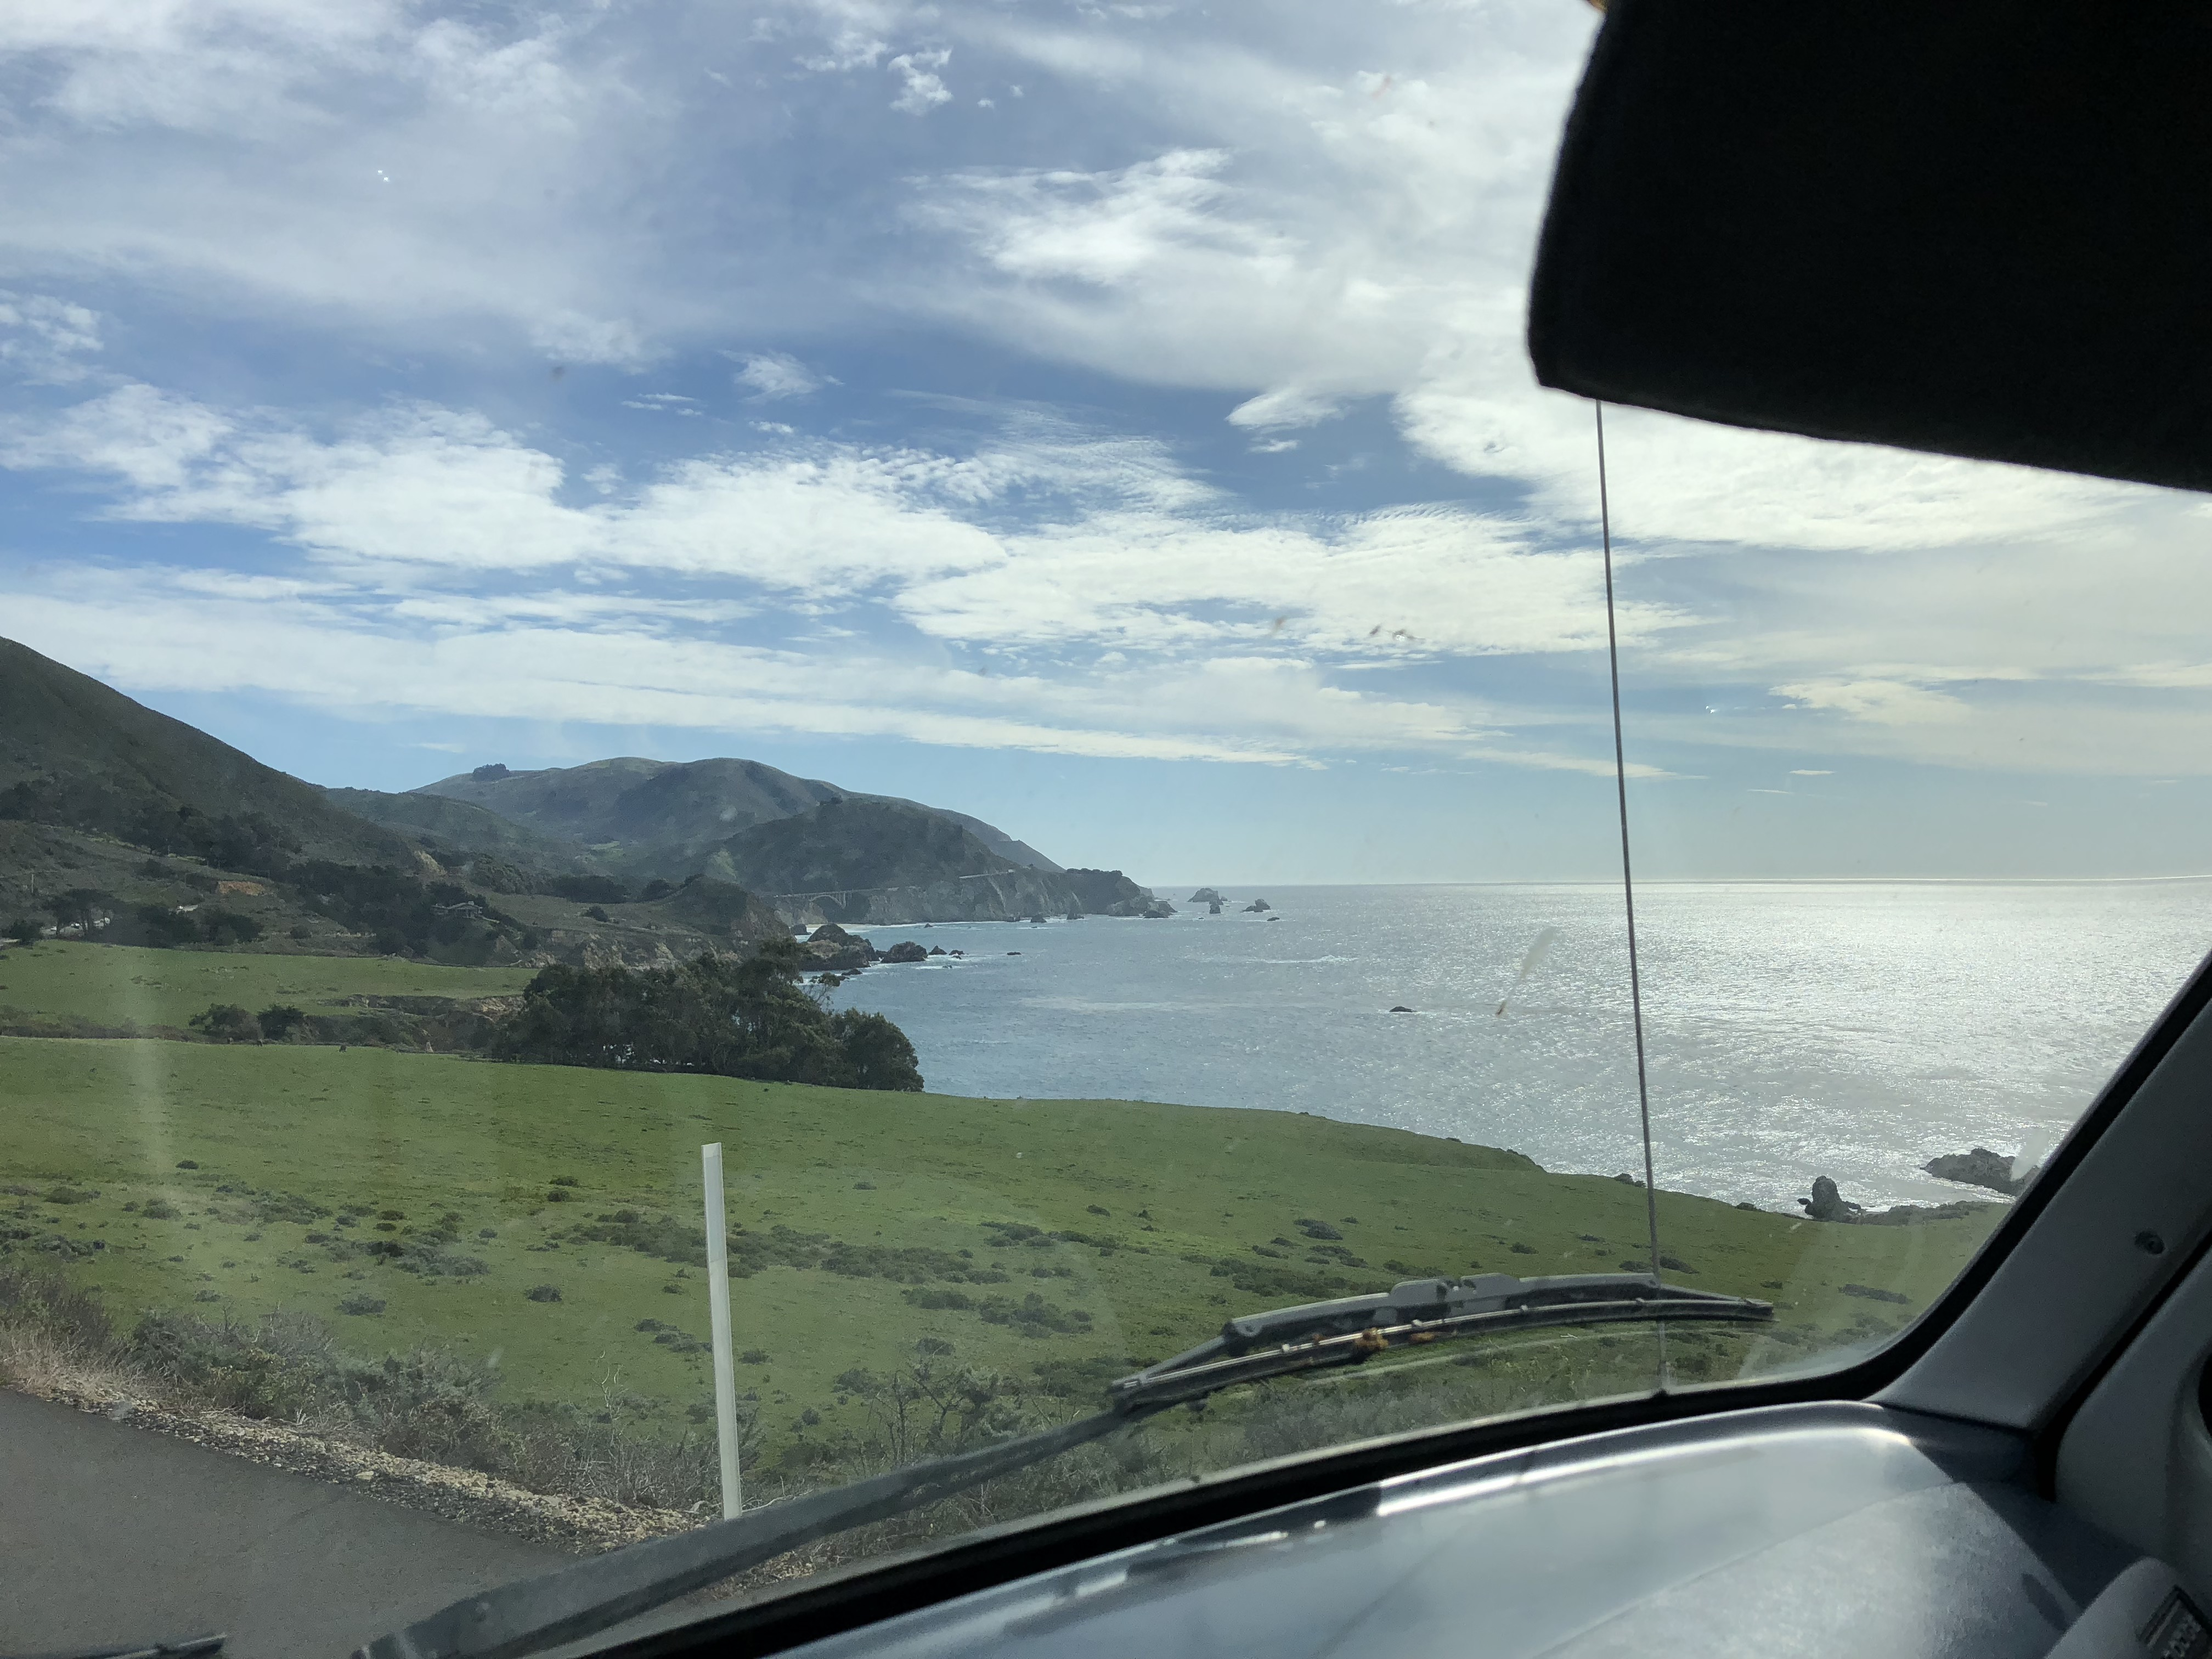 A view of Highway 1 from my car